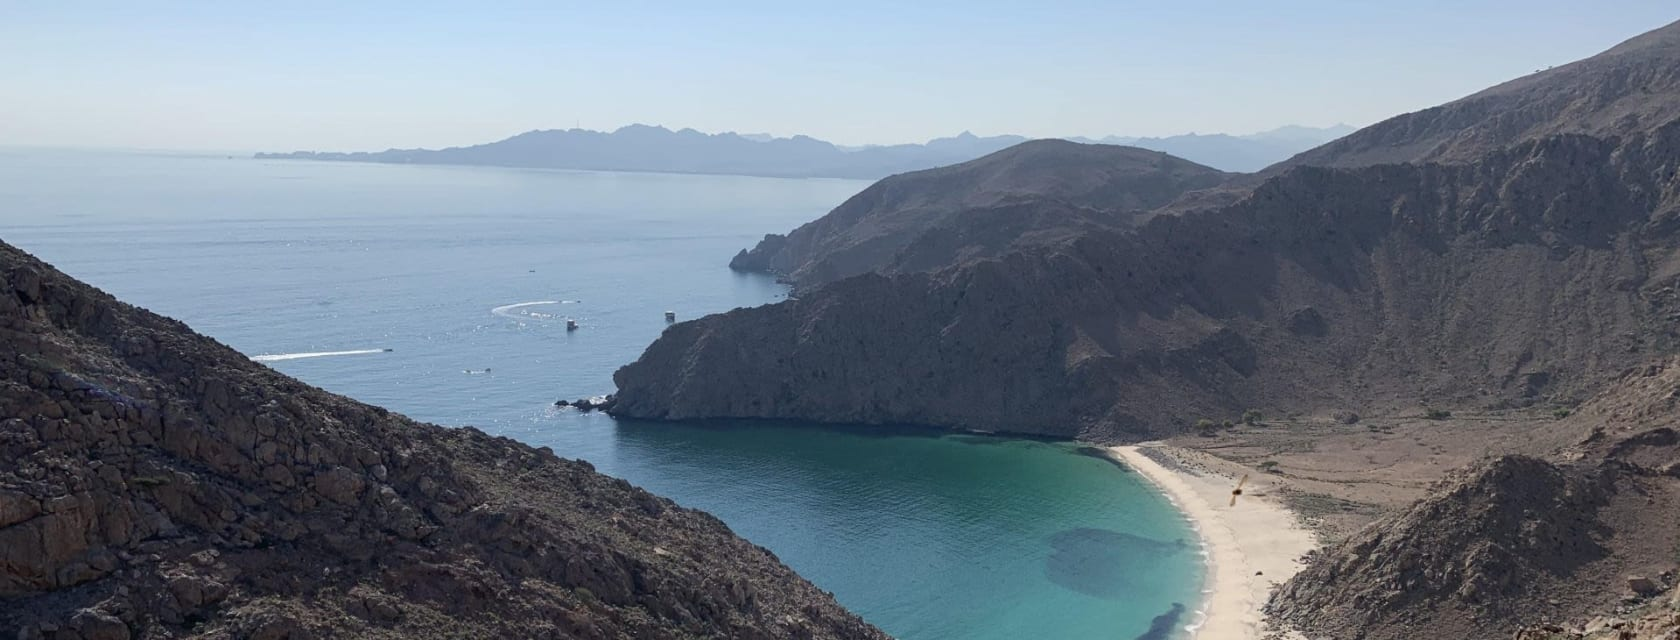 Photo of Smugglers Bay in Musandam Peninsula, Oman